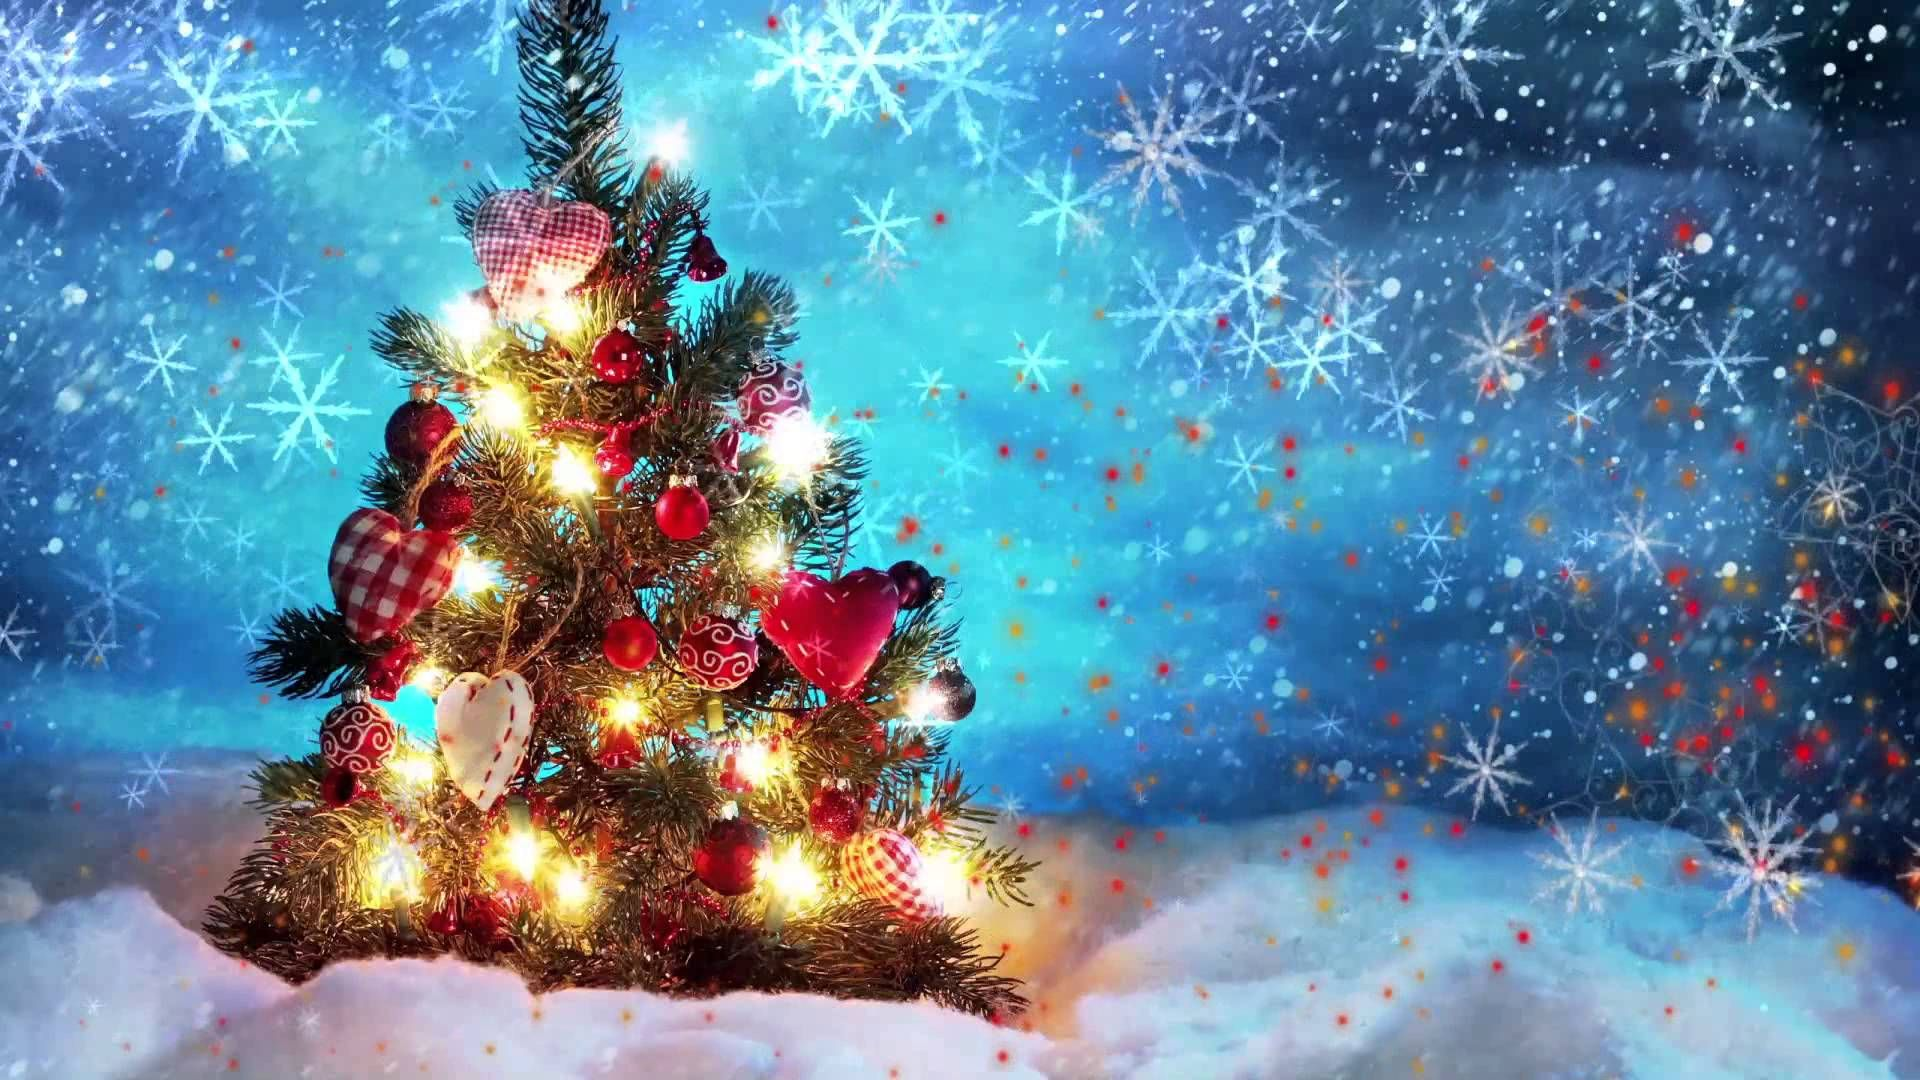 Christmas Animated Video Background Loop Christmas Desktop Wallpaper Christmas Tree Wallpaper Cute Christmas Tree